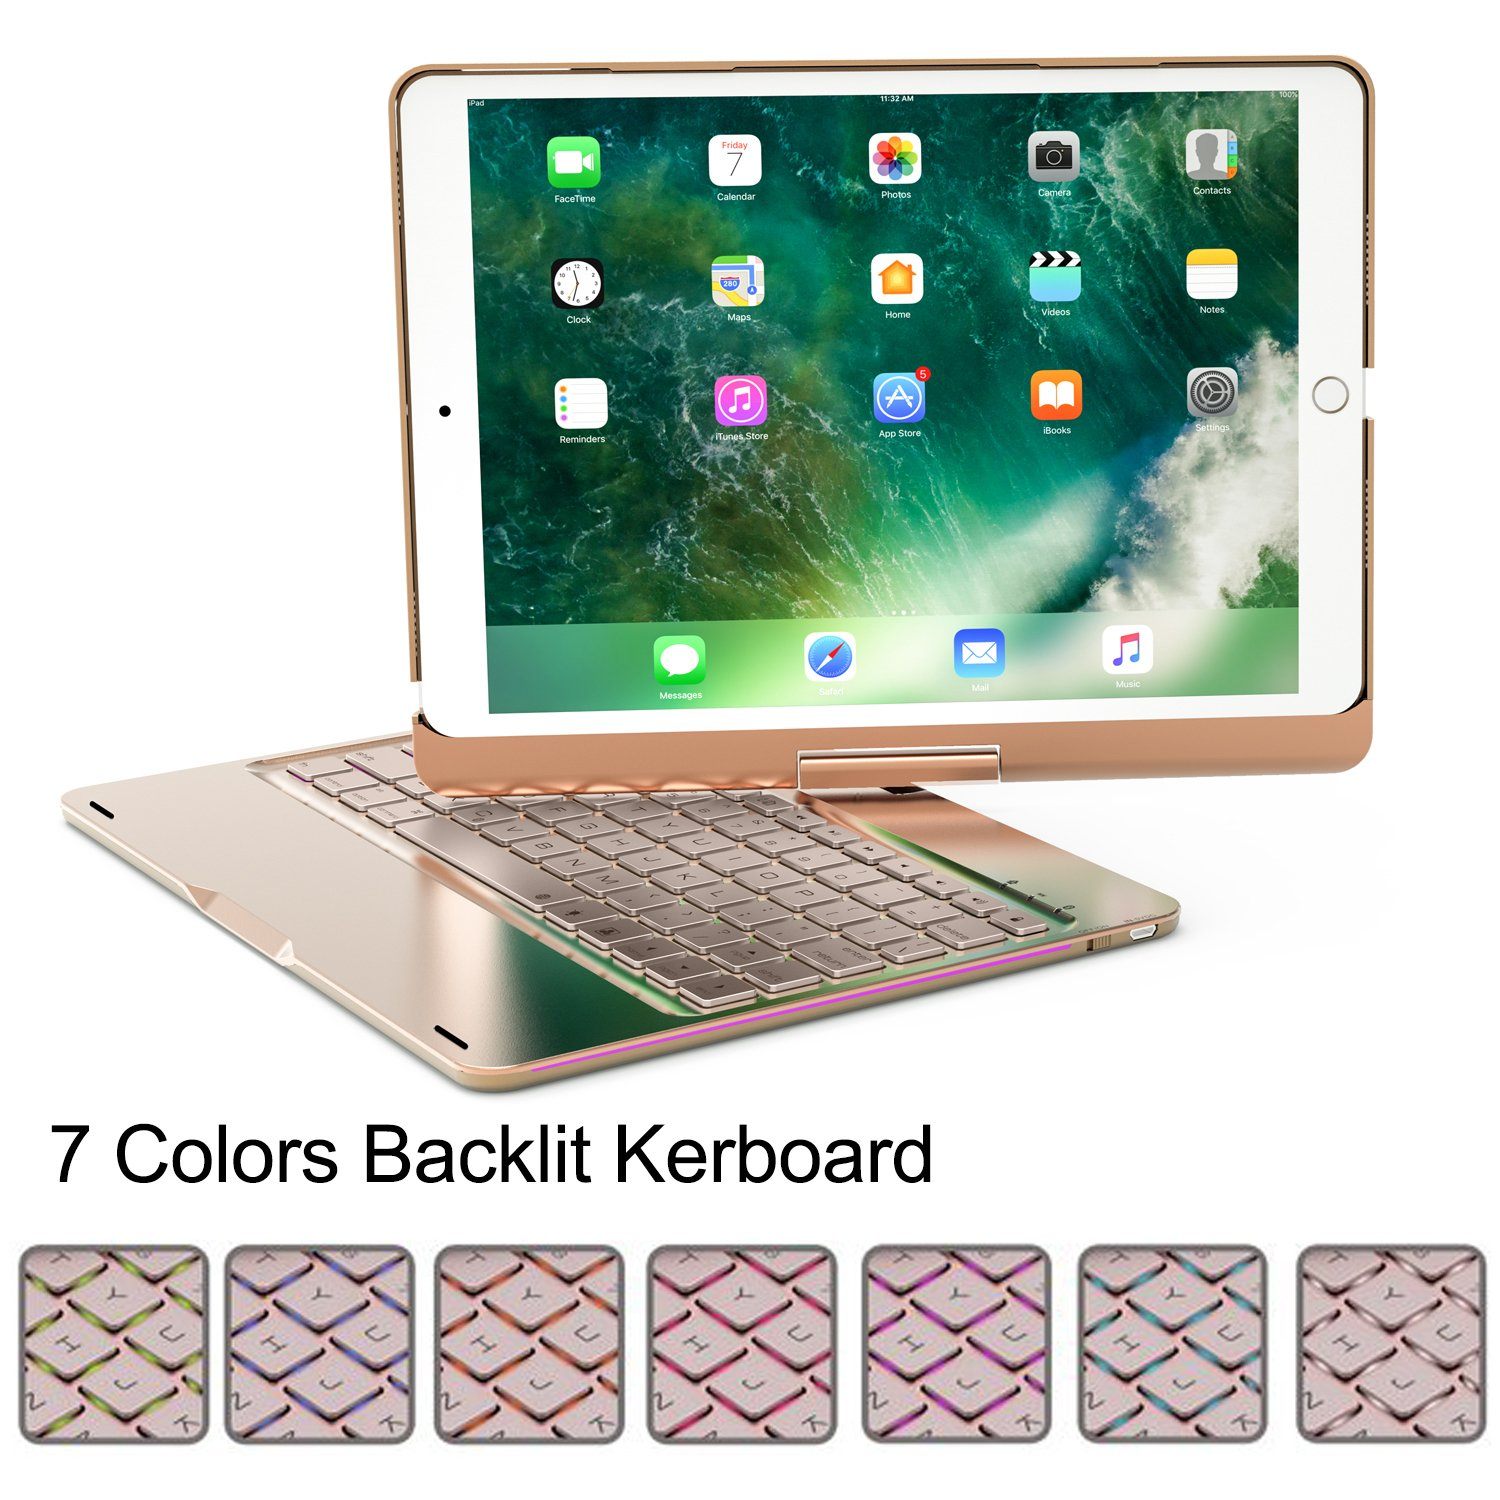 BECROWMUS Wireless Keyboard for Ipad pro,Aluminum Alloy Ultra-Thin Apple 10.5'' iPad Bluetooth Keyboard Folio Case Cover with 7 Colors Backlit and 360° Horizontal Rotation,Gold